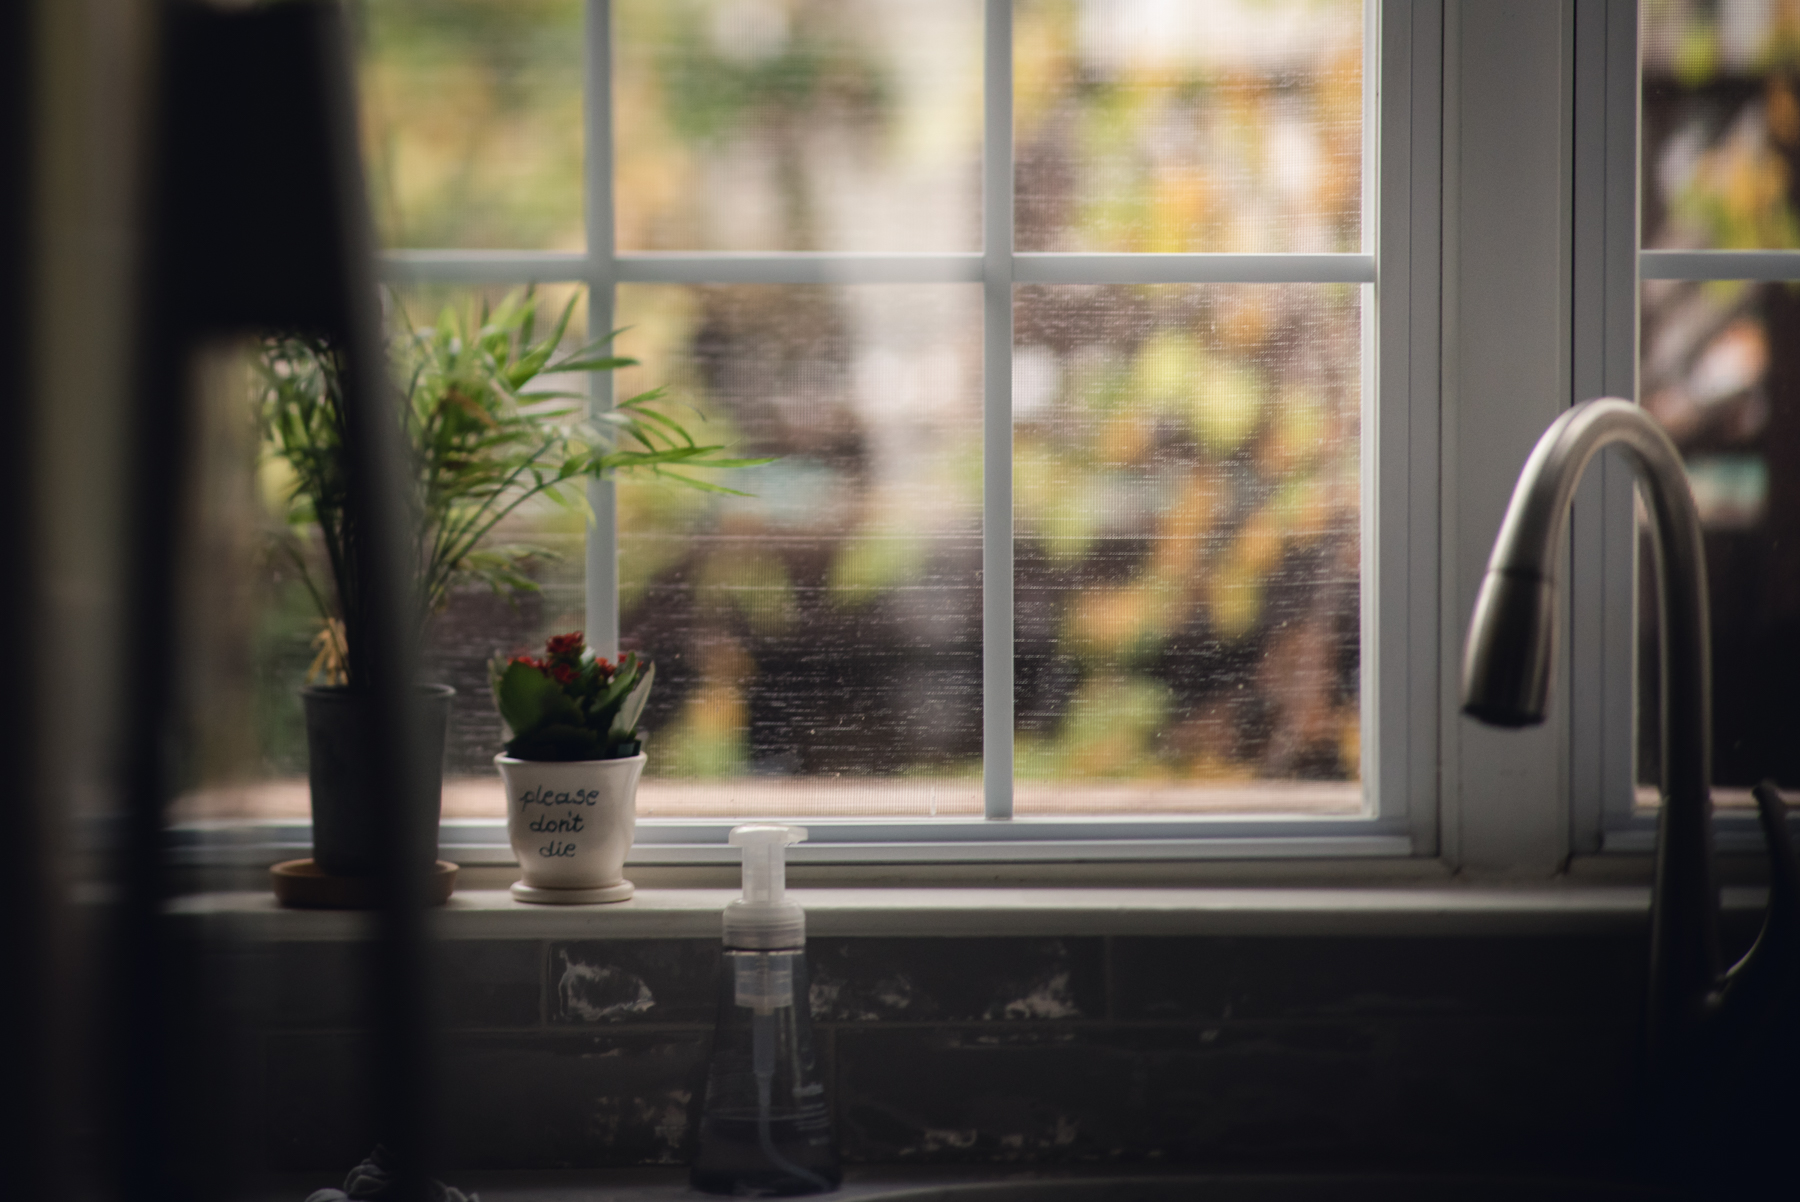 freelensed picture of kitchen window by megan cieloha